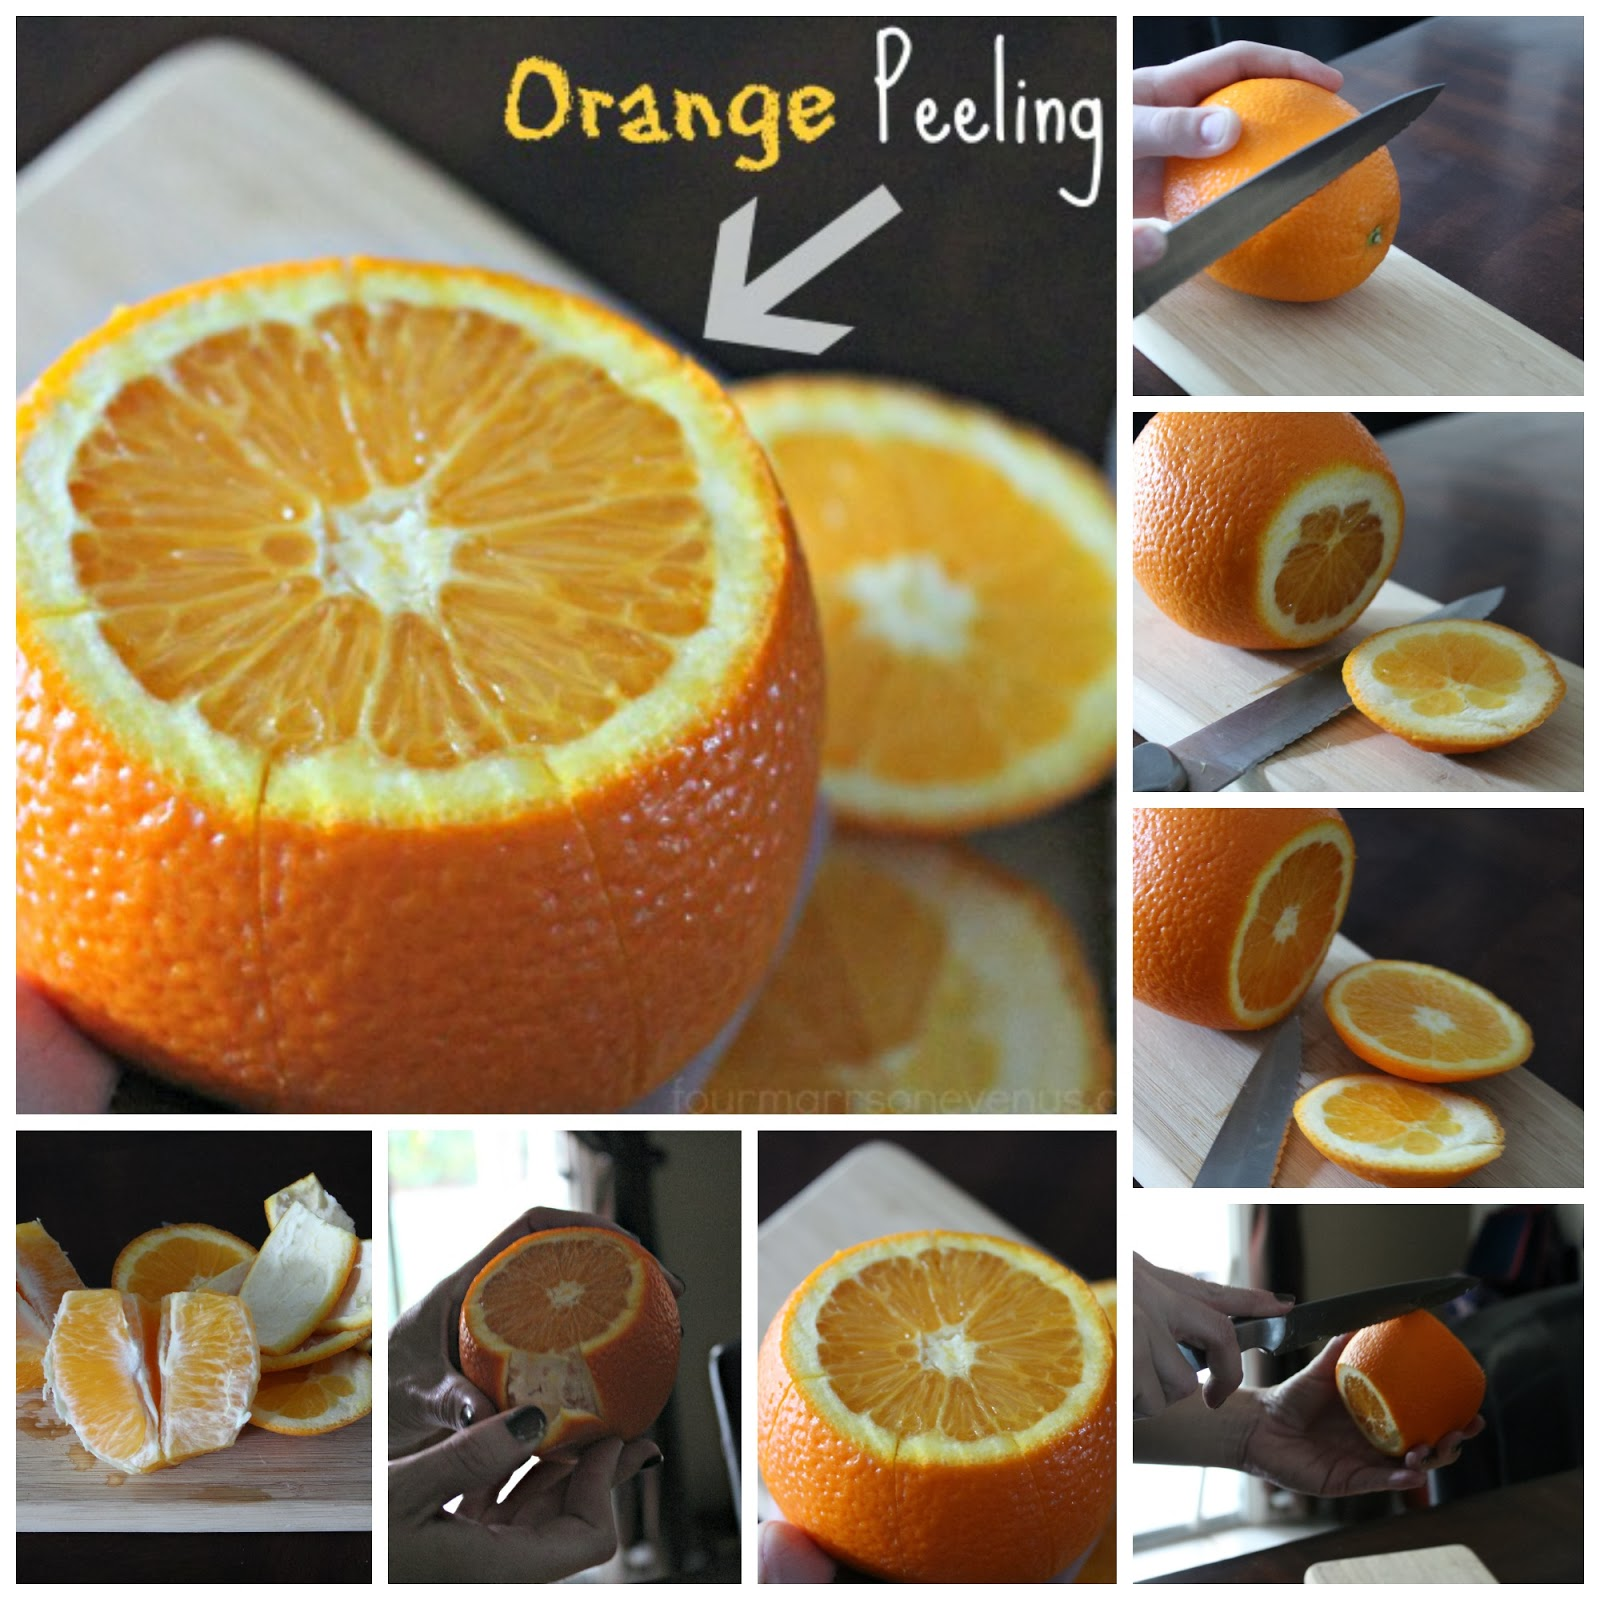 Steps on how to peel an orange